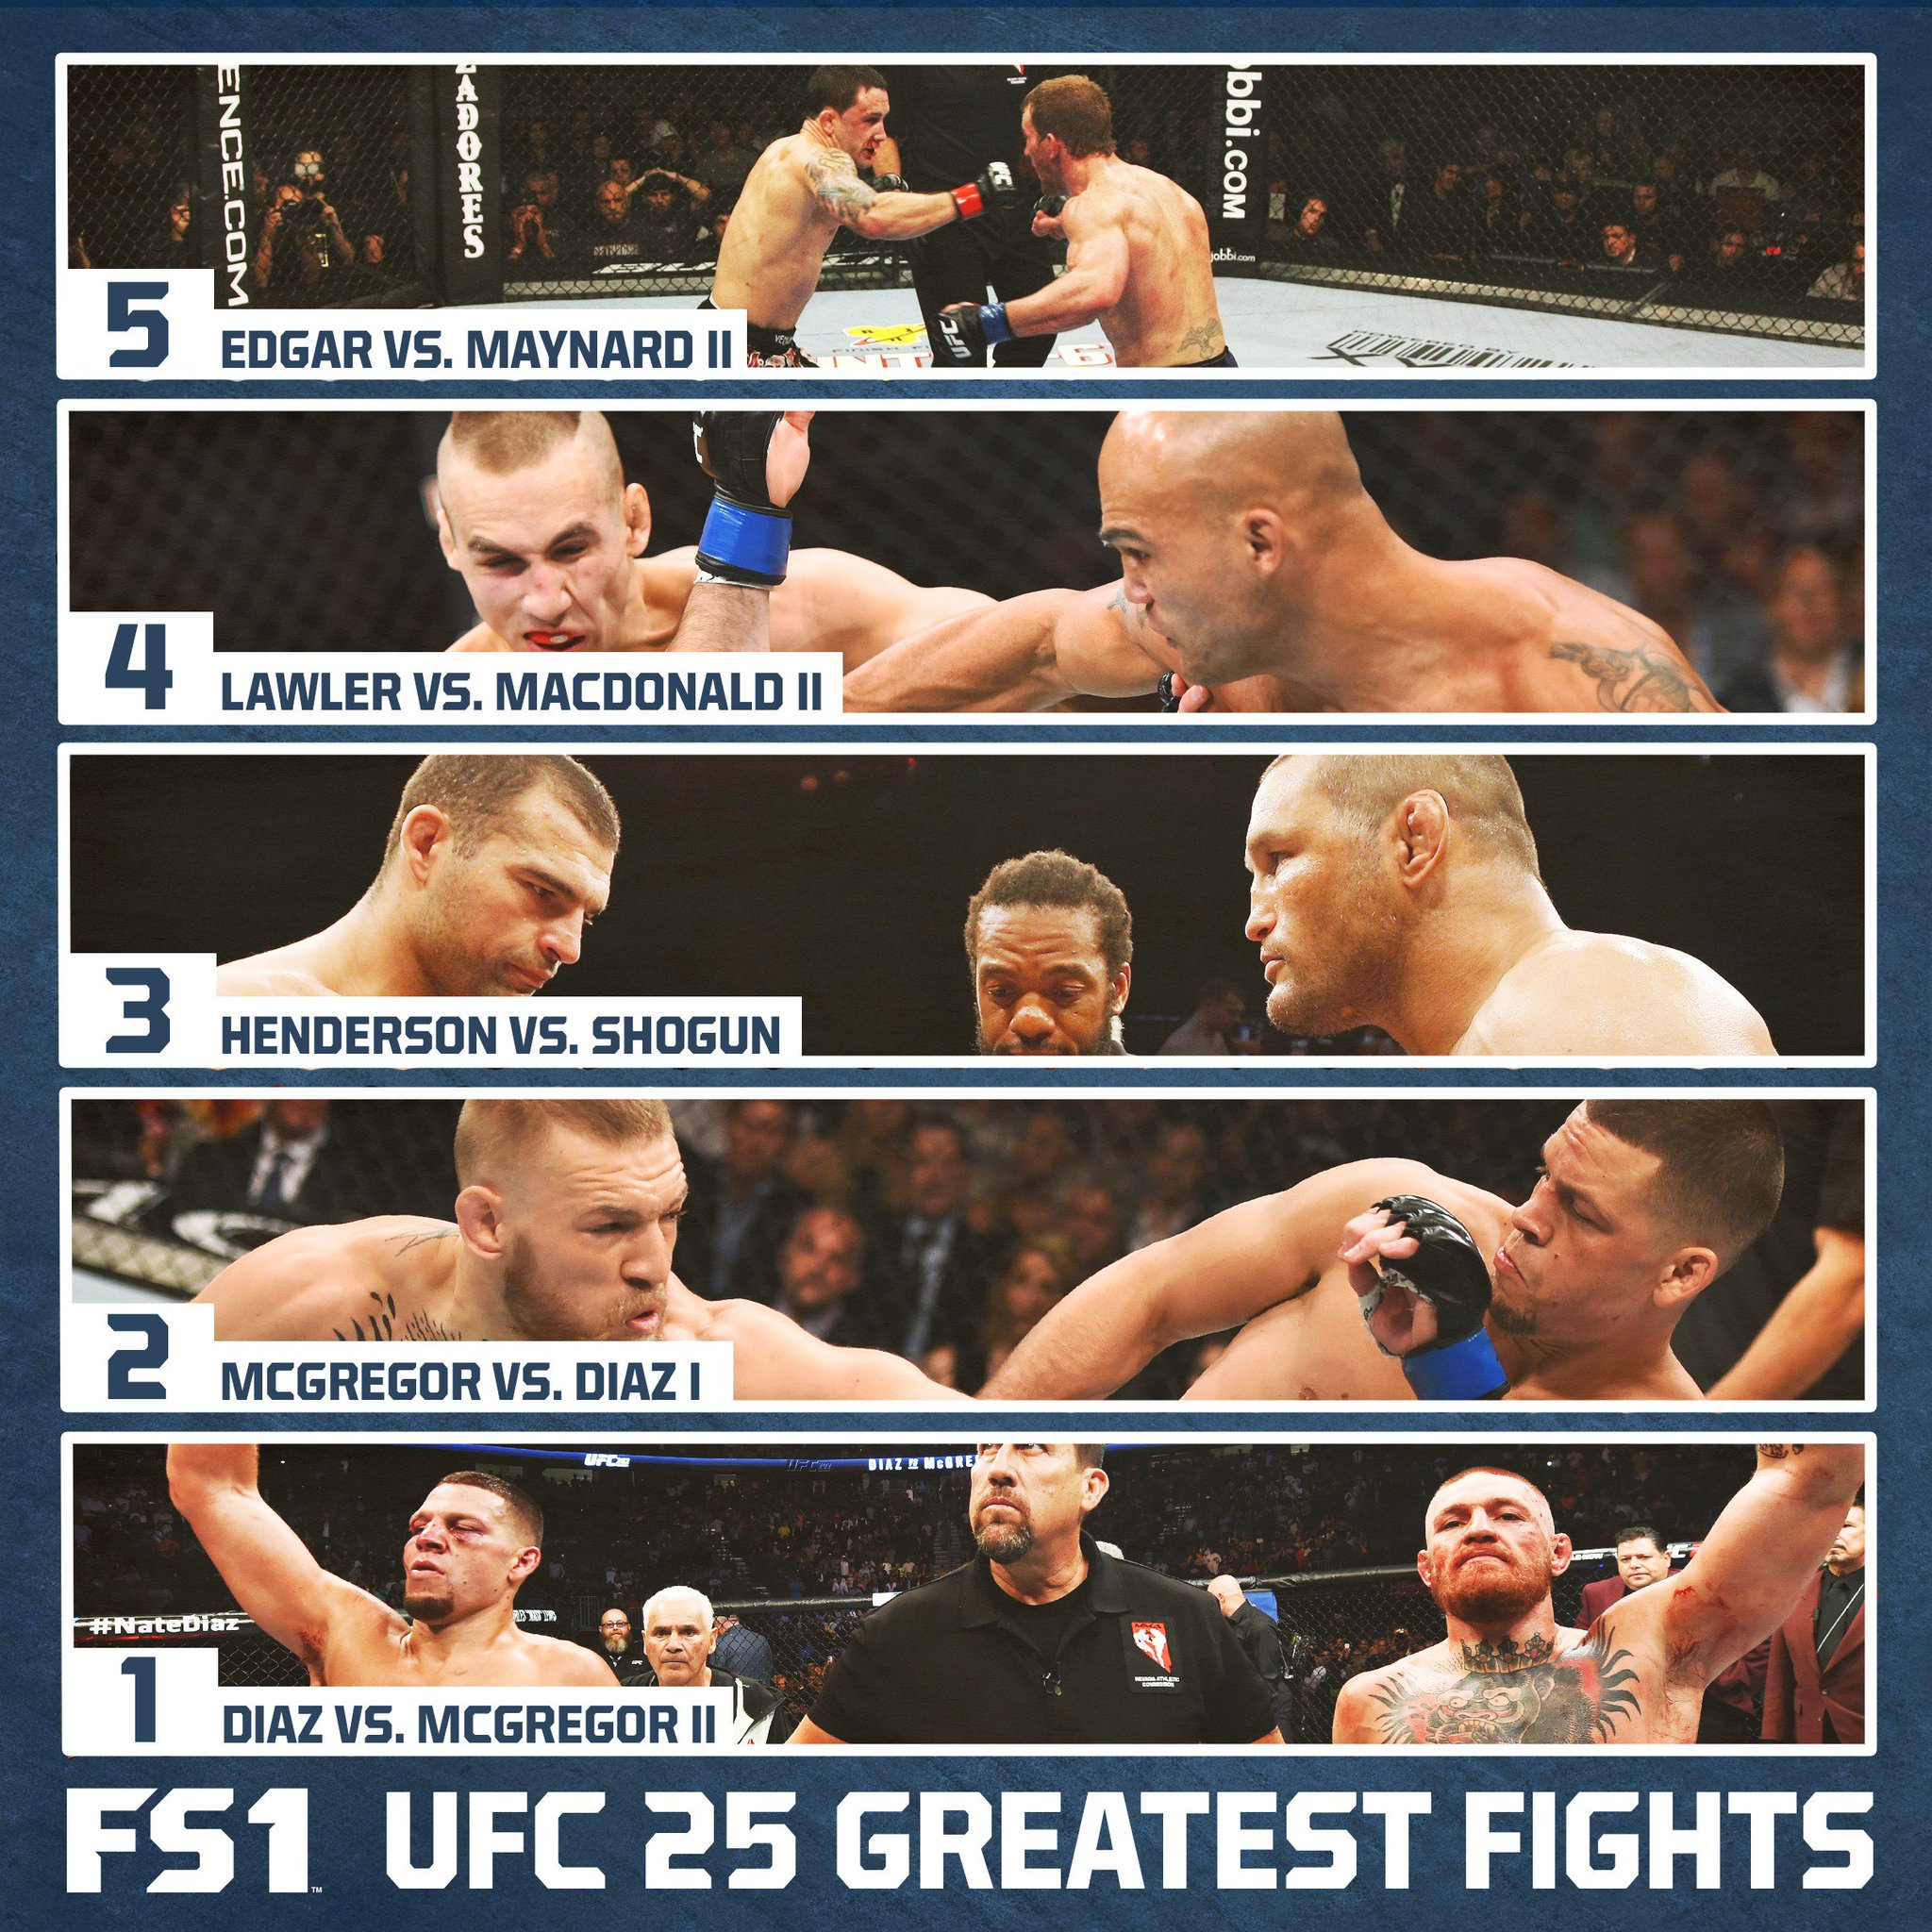 Conor vs. Nate II comes in at #1...did the @ufc get it right? What fight should be the GOAT? https://t.co/KKV6fRcVDA